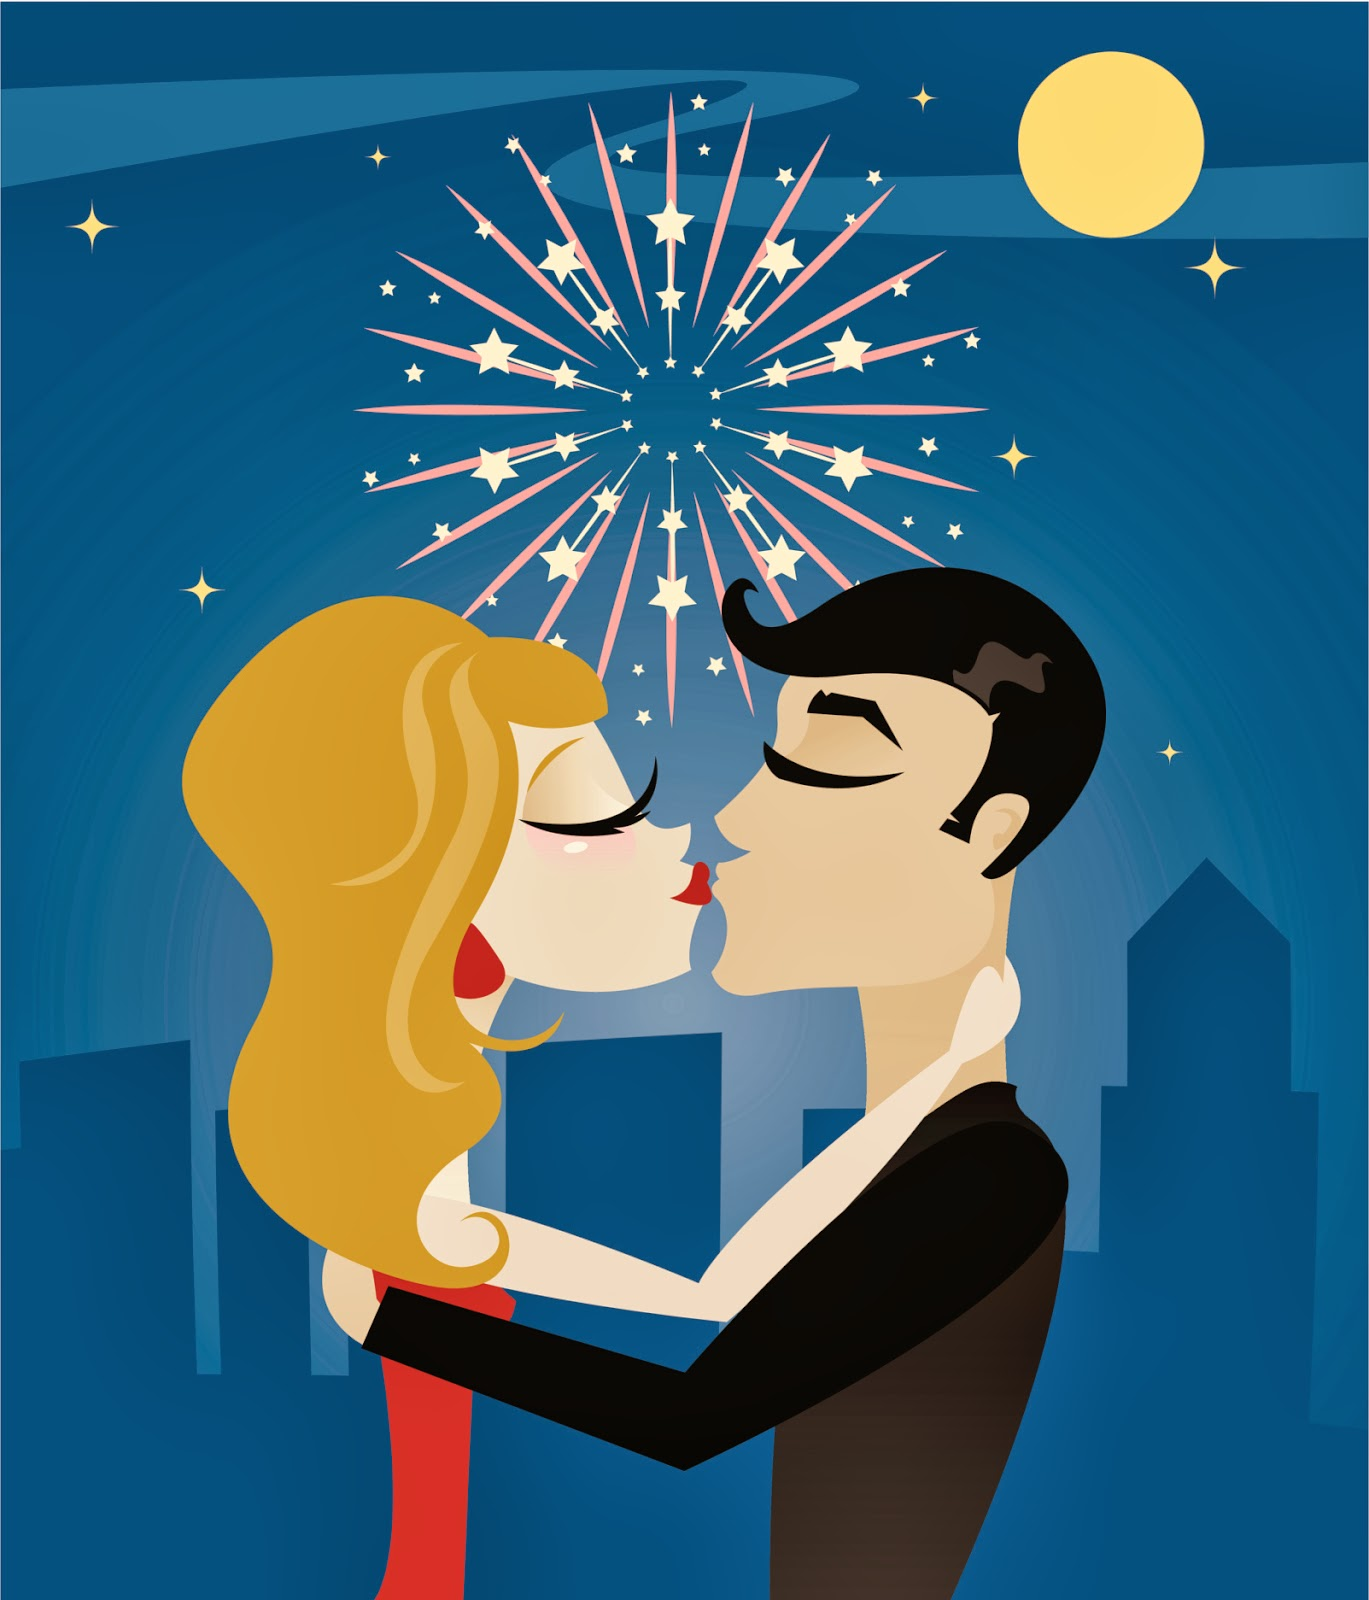 ELIfe: The Traditional New Year's Eve Kiss.